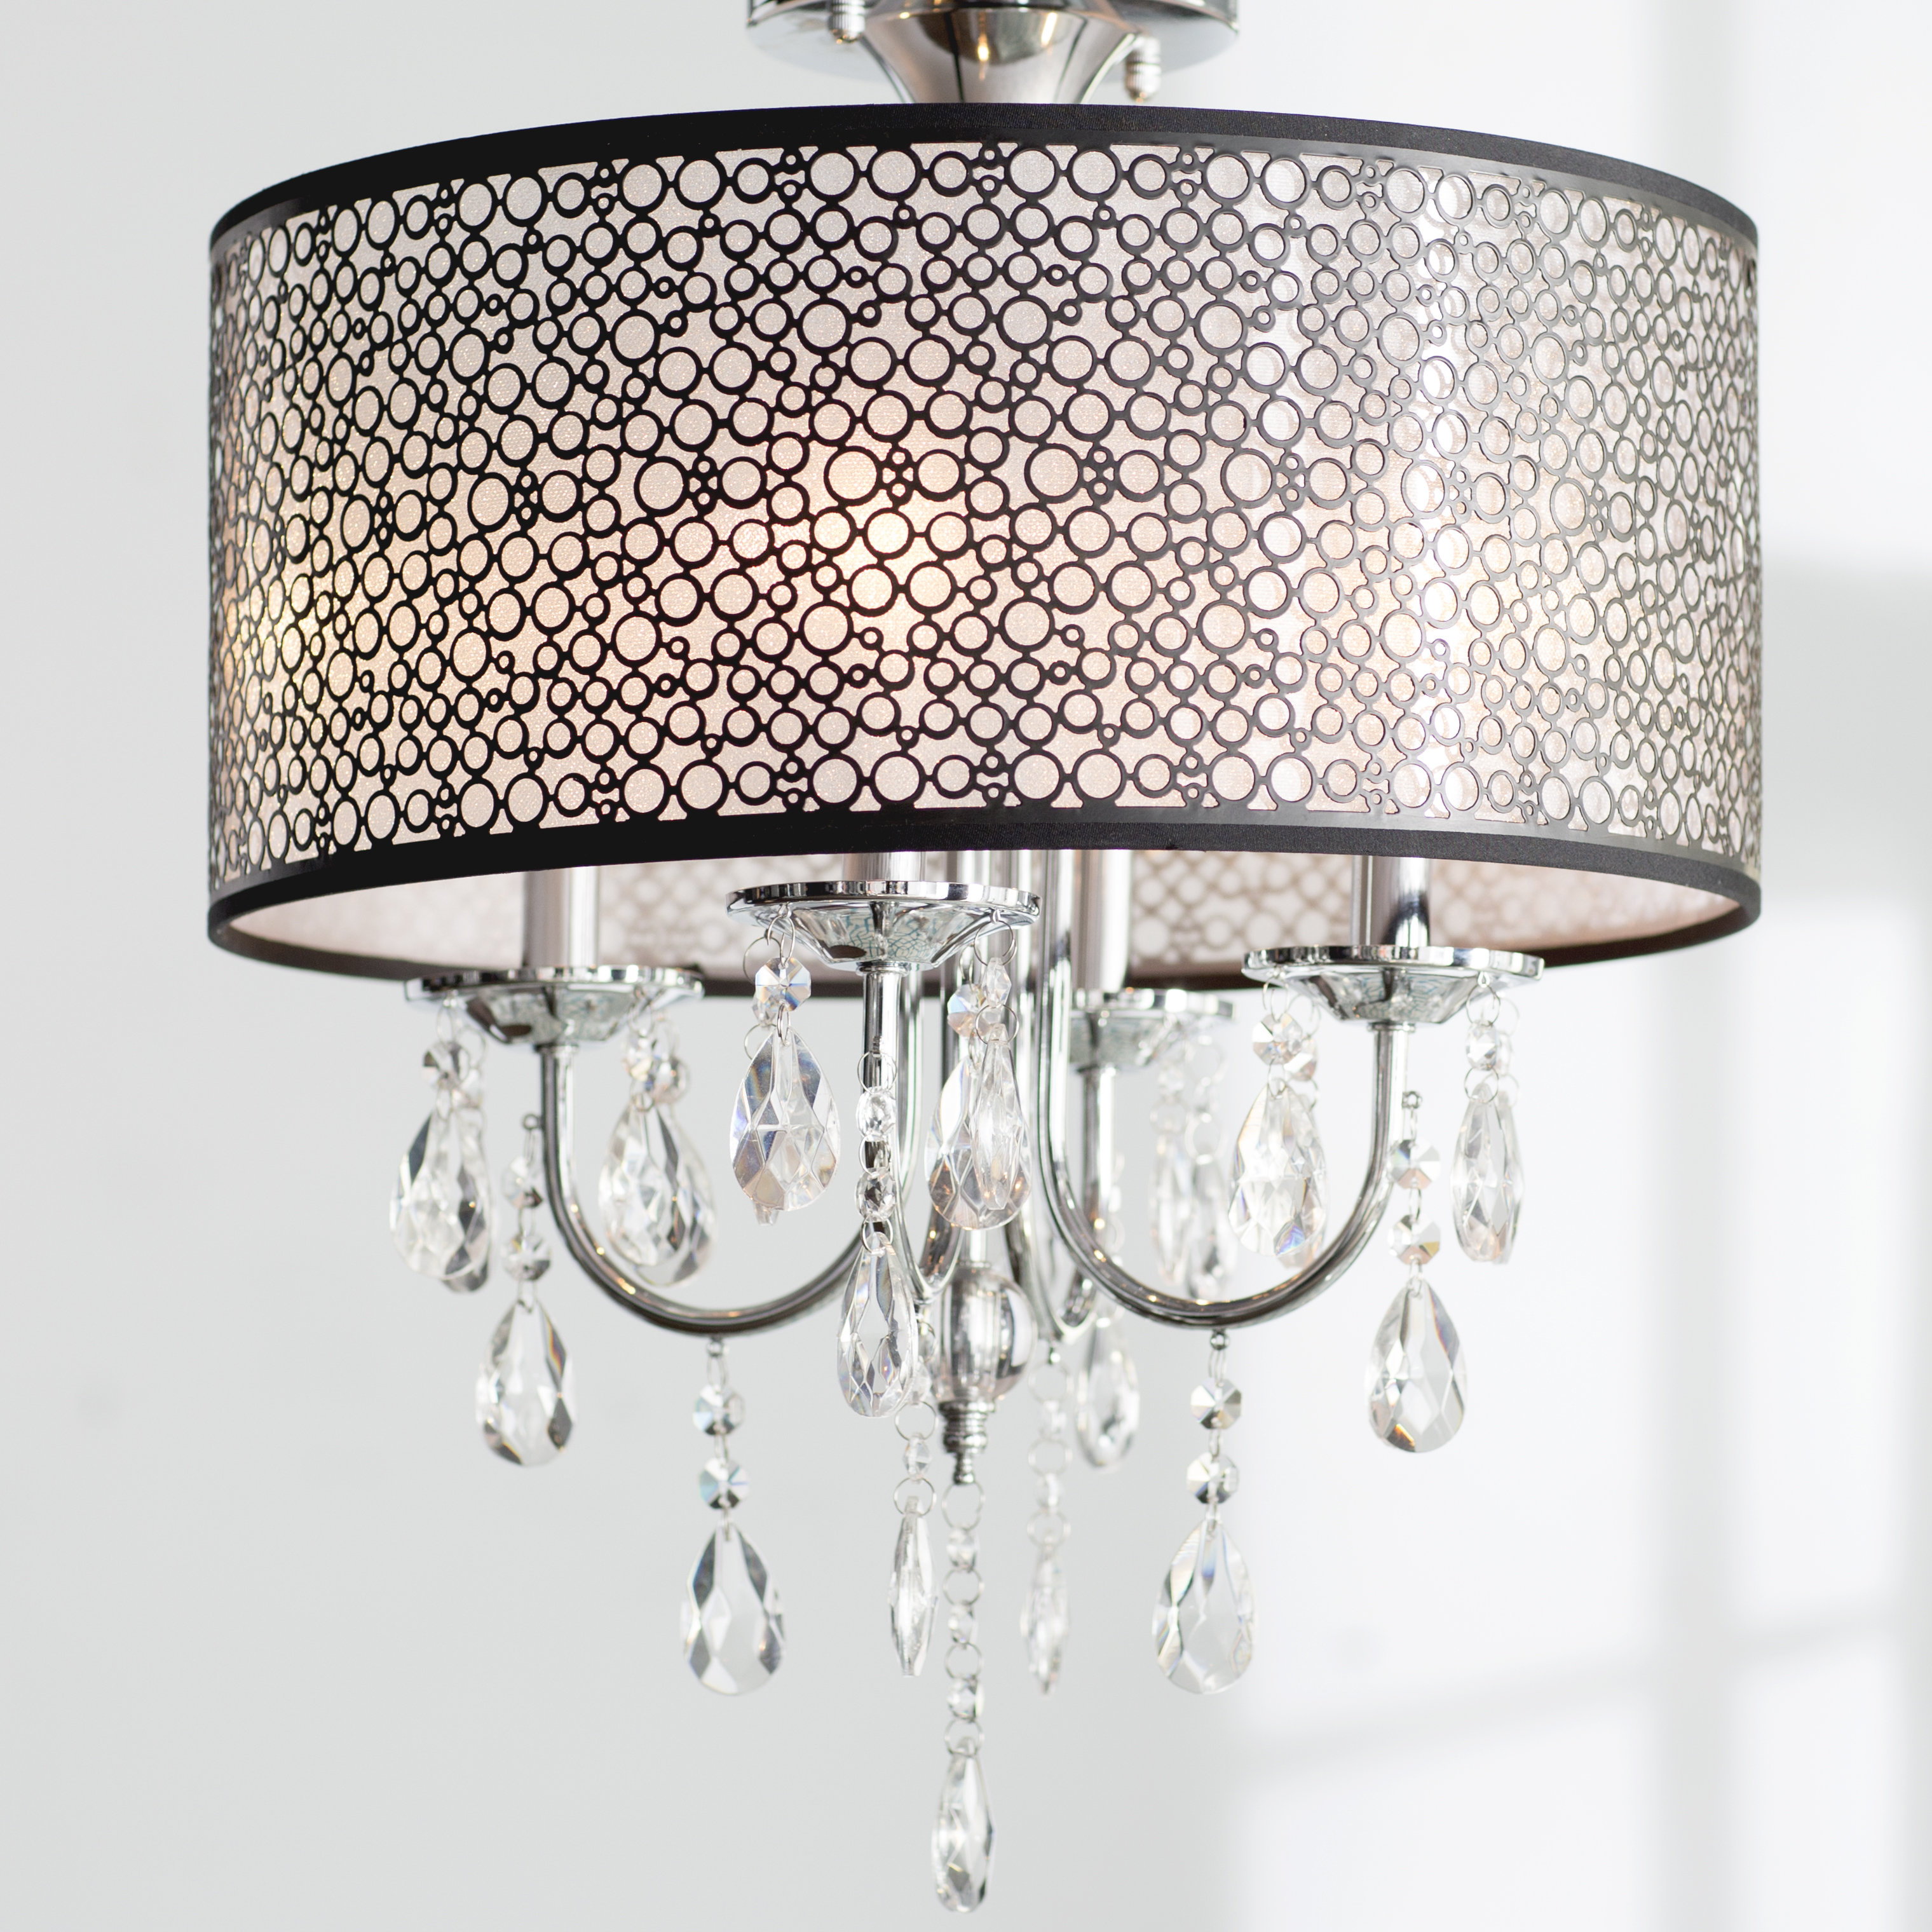 Best And Newest Willa Arlo Interiors Sinead 4 Light Chandelier & Reviews Within Lindsey 4 Light Drum Chandeliers (View 10 of 25)